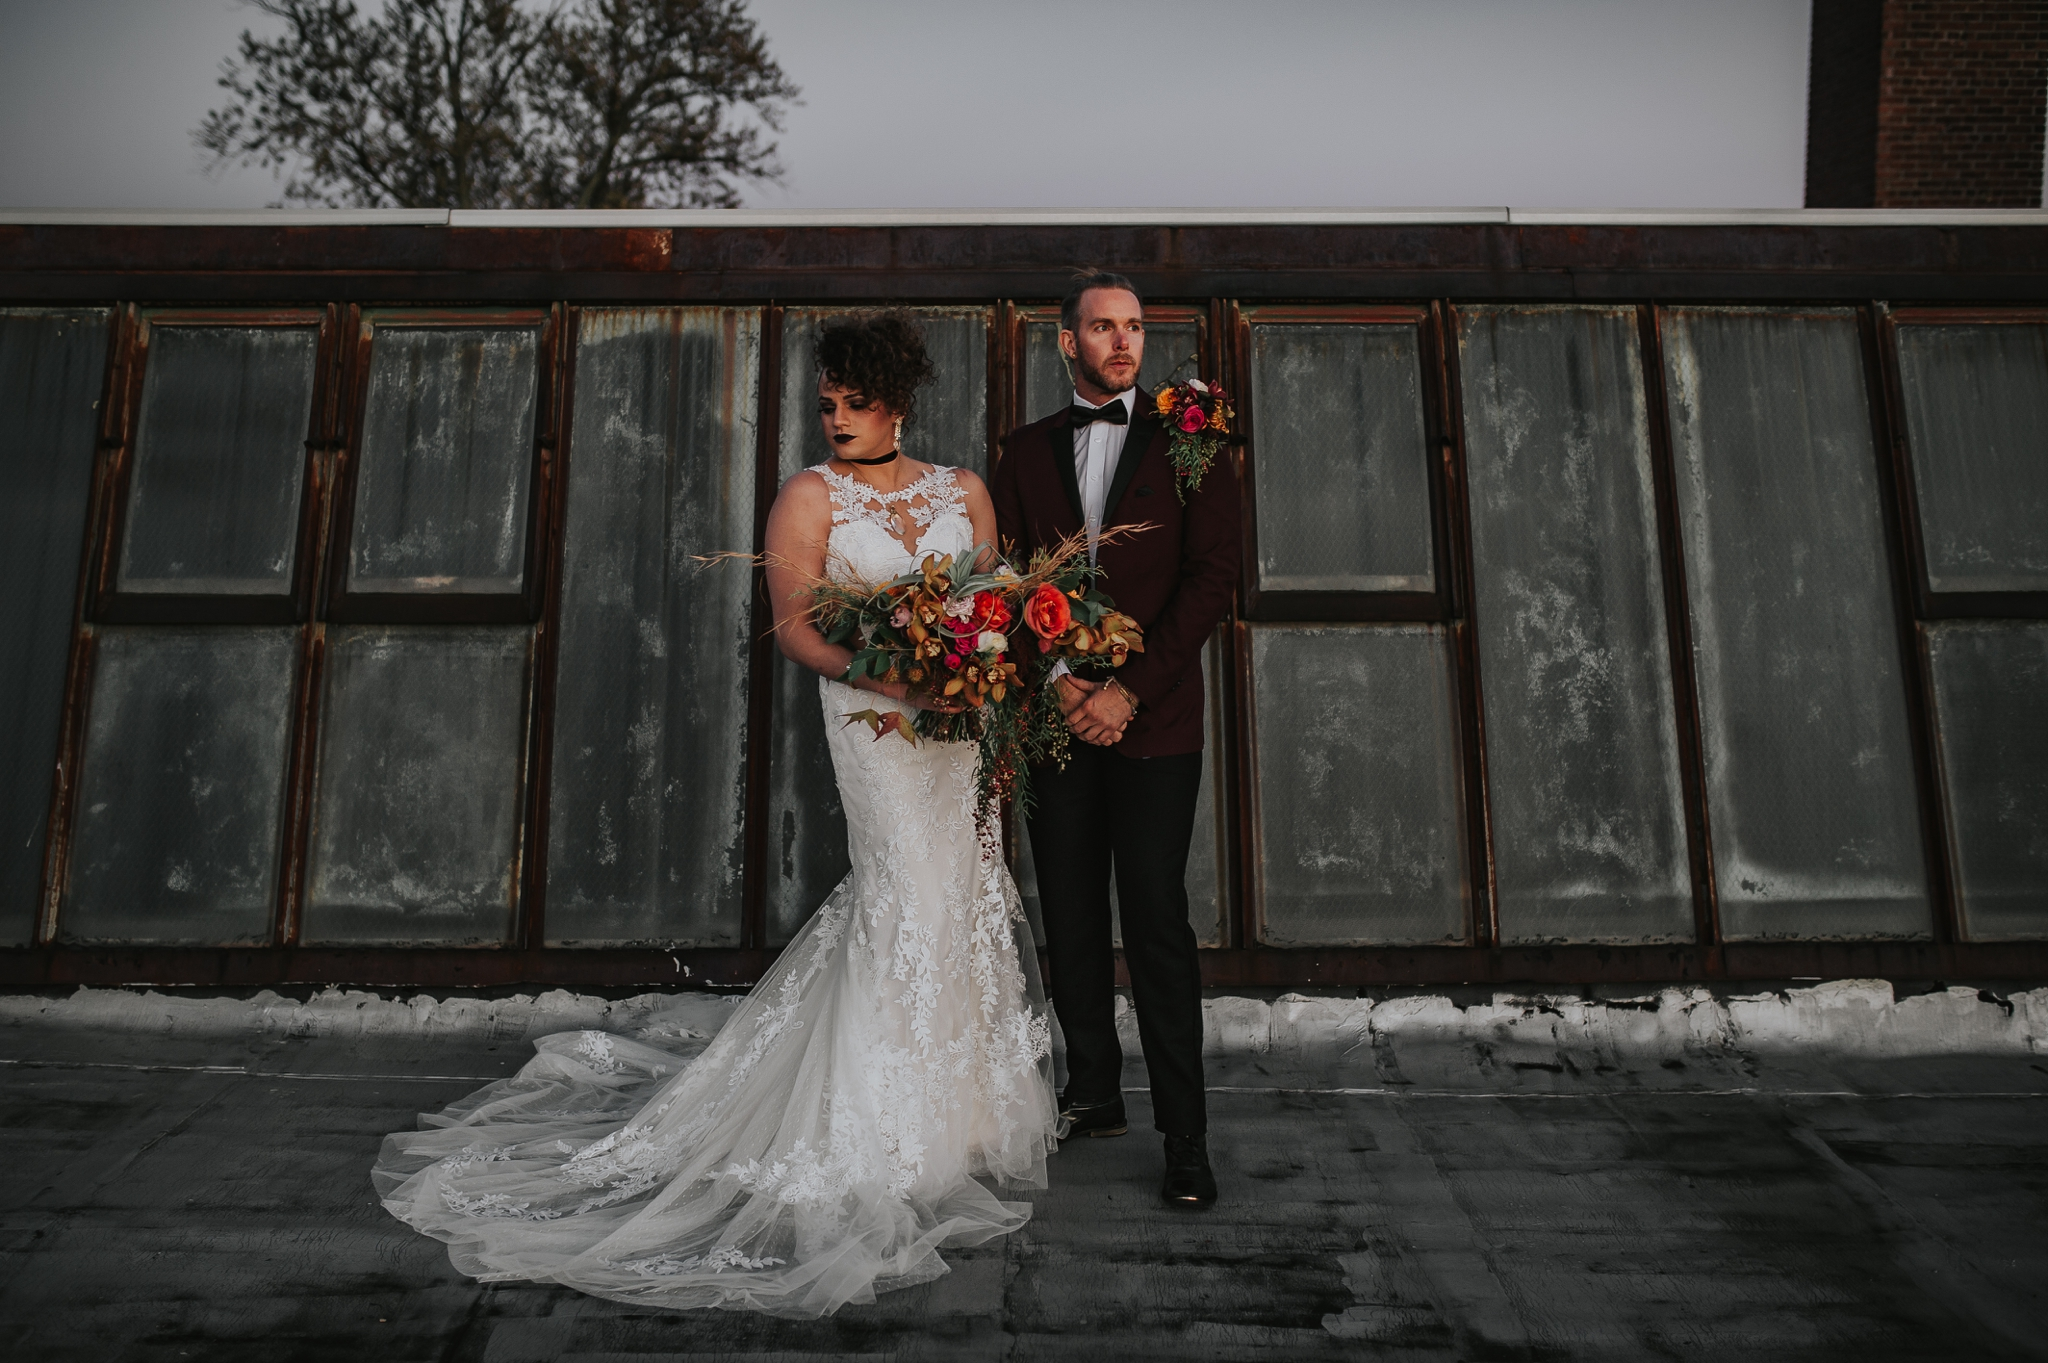 Power couple with Liliian West gown and JTGhamo maroon suit - Pearl Weddings & Events